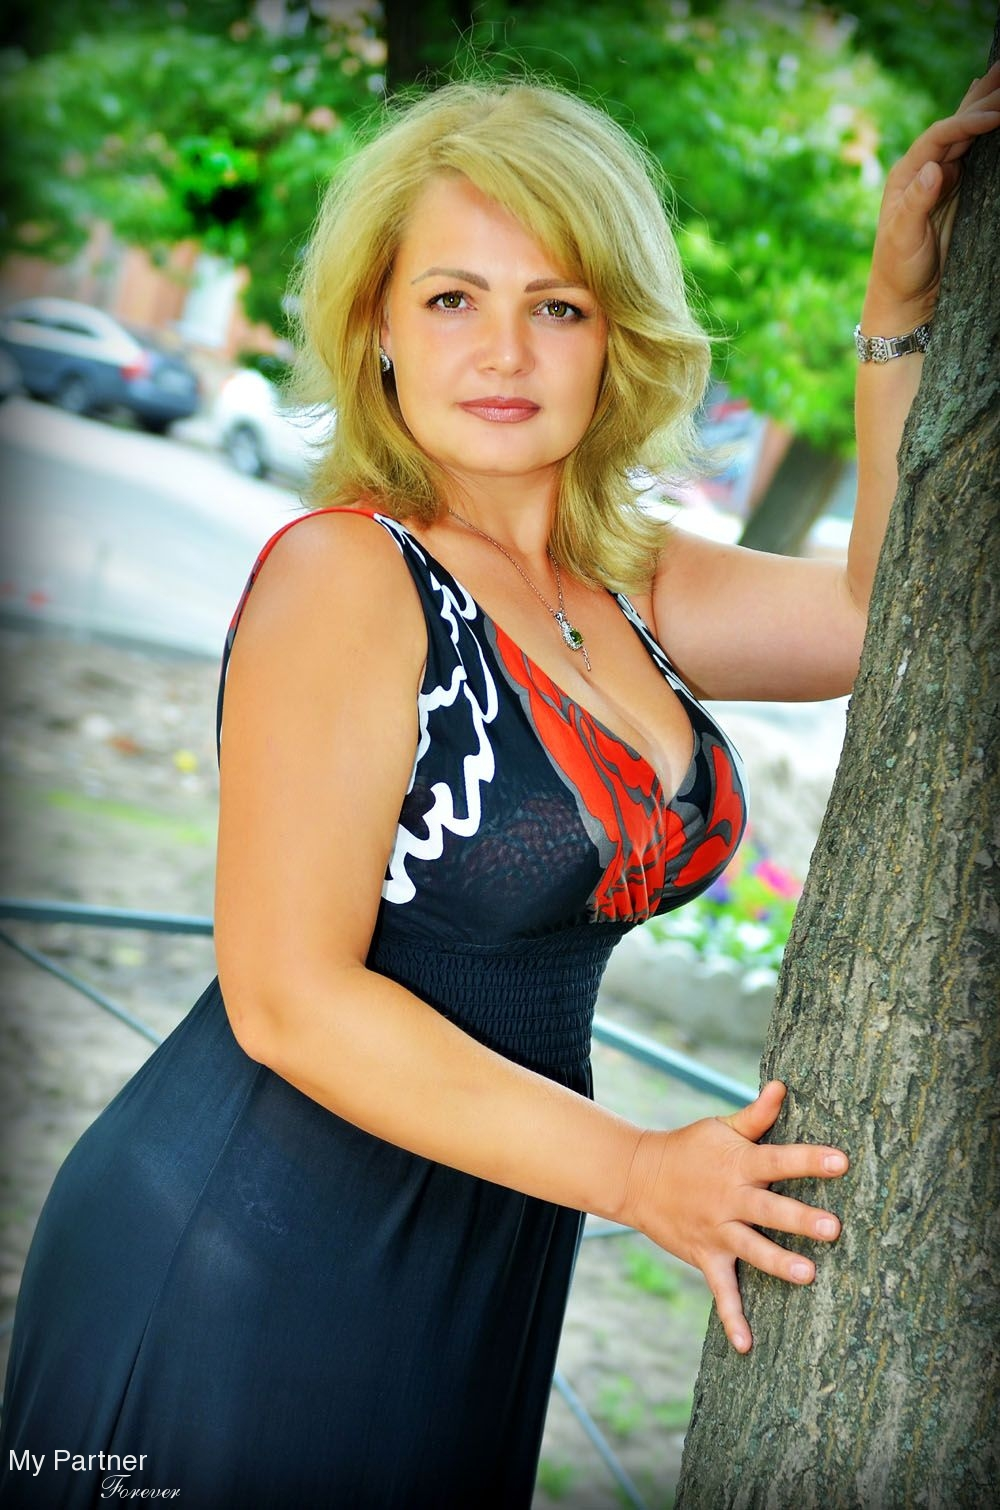 baripada divorced singles personals Baripada's best 100% free divorced singles dating site meet thousands of divorced singles in baripada with mingle2's free divorced singles personal ads and chat rooms.